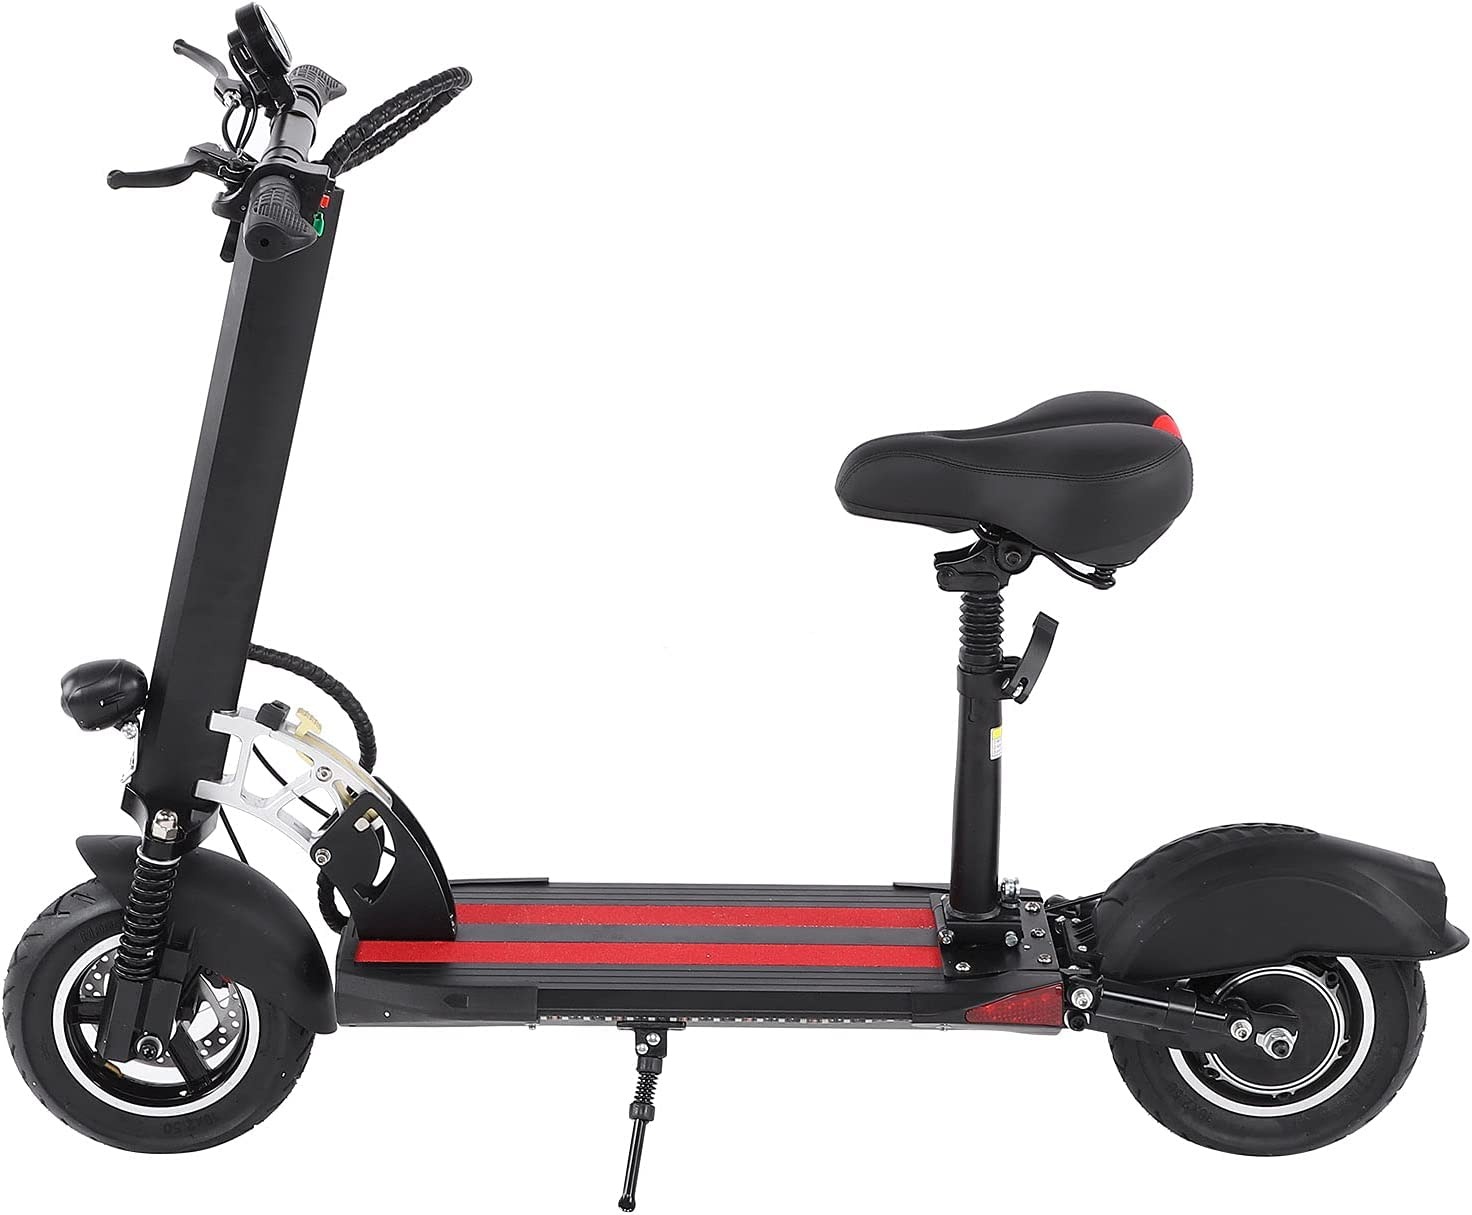 Dilwe Folding E Scooter Speed 45km Memphis Mall Electric service h 10 Inch Scoo 500W